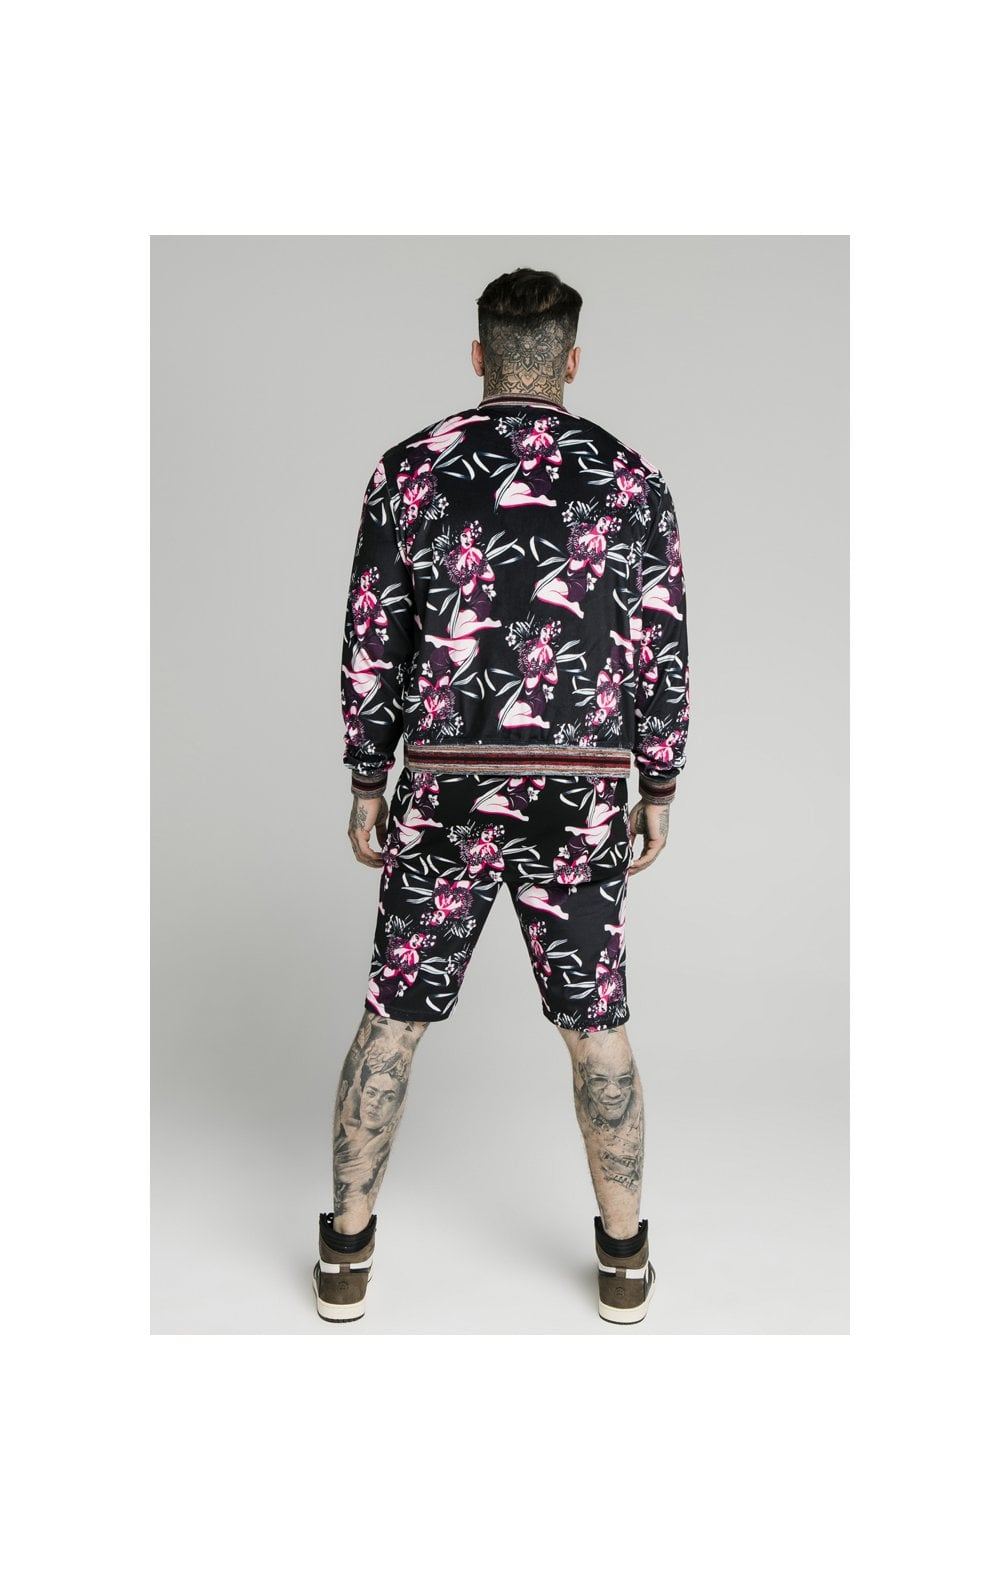 Load image into Gallery viewer, SikSilk Velour Tropics Bomber - Black & Tropics (3)